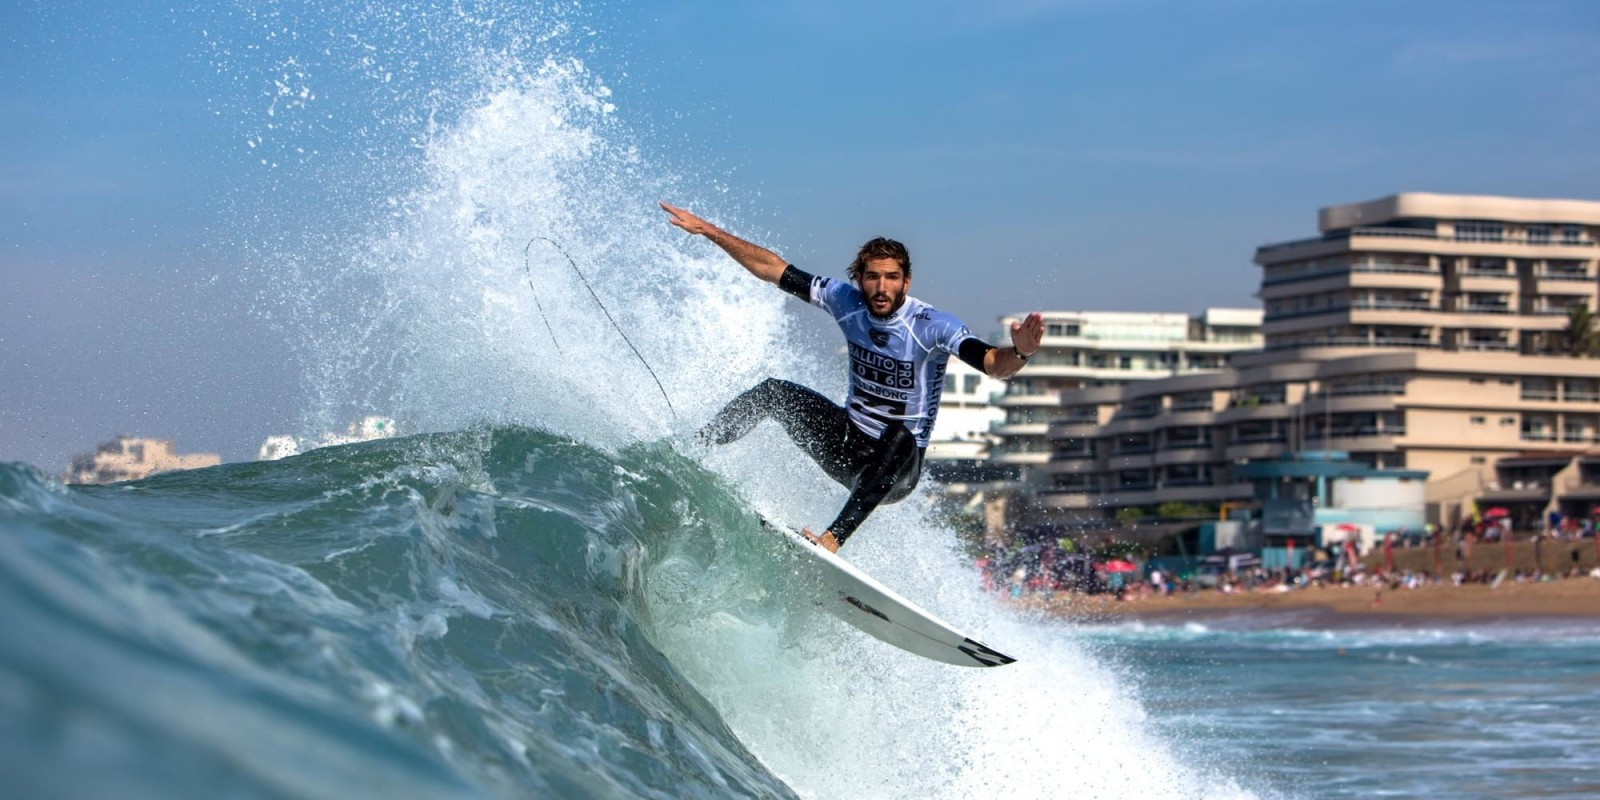 Frederico Morais smashing his way through qualifying with a win in his heat.